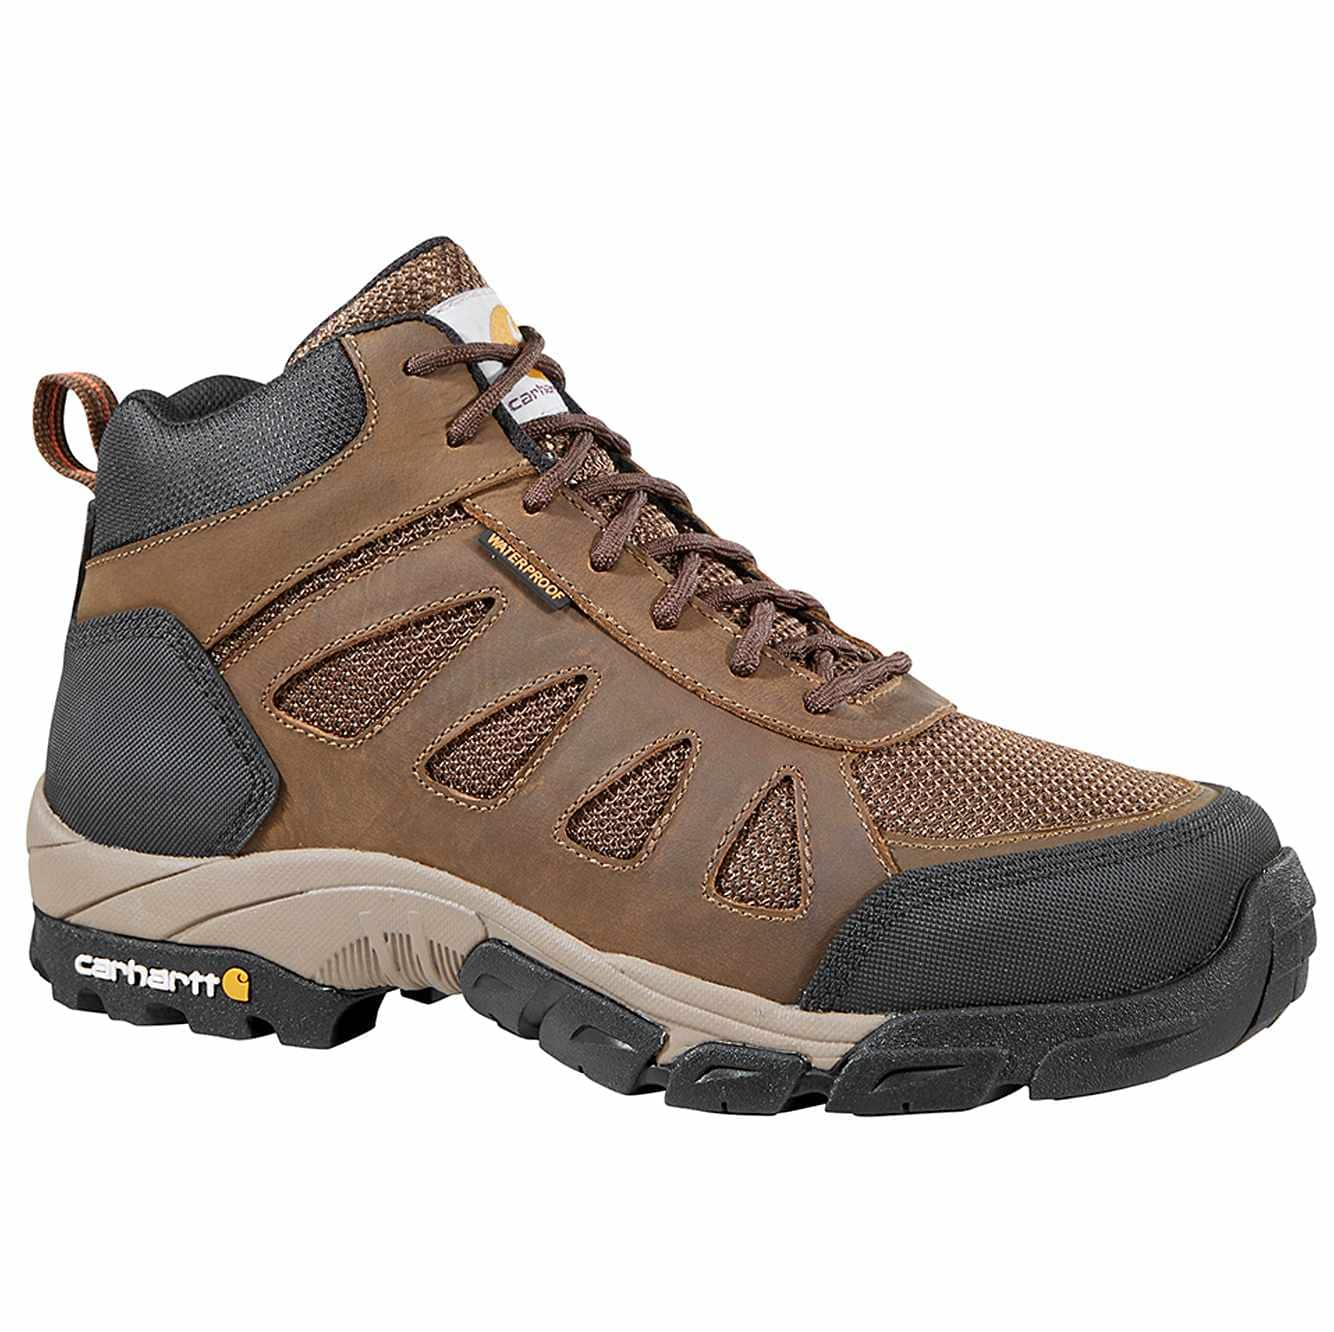 Picture of Lightweight Non-Safety Toe Work Hiker in Brown Leather and Nylon